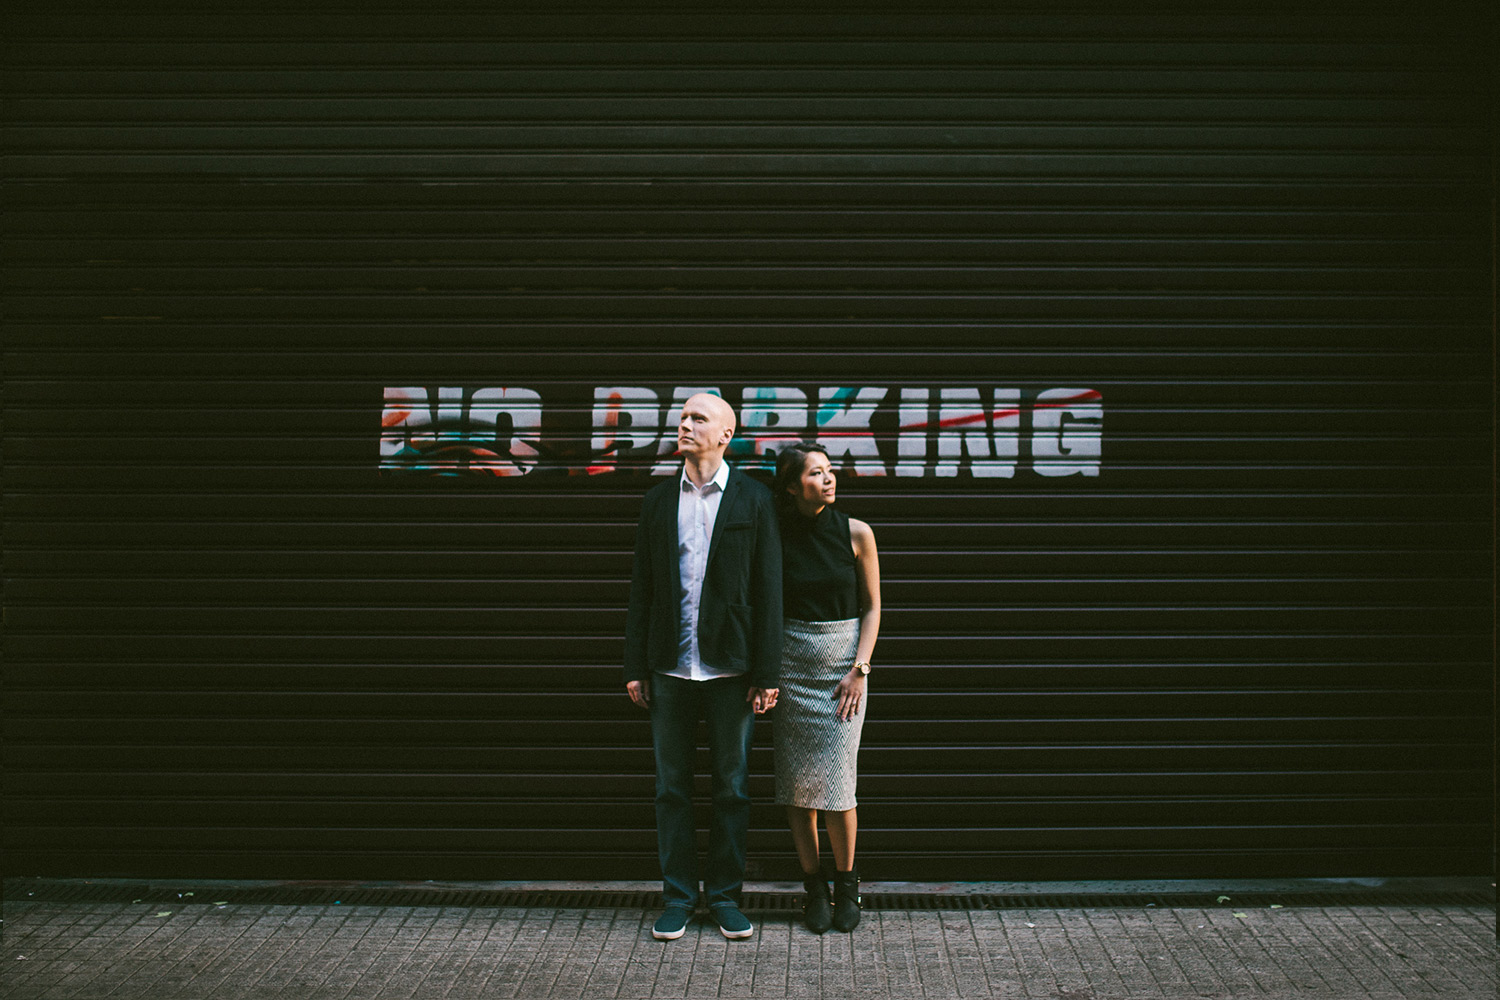 Elaine-Stephen-Engagement-Melbourne-Quirky-Urban-Engagement-Session-Wedding-Photography-12